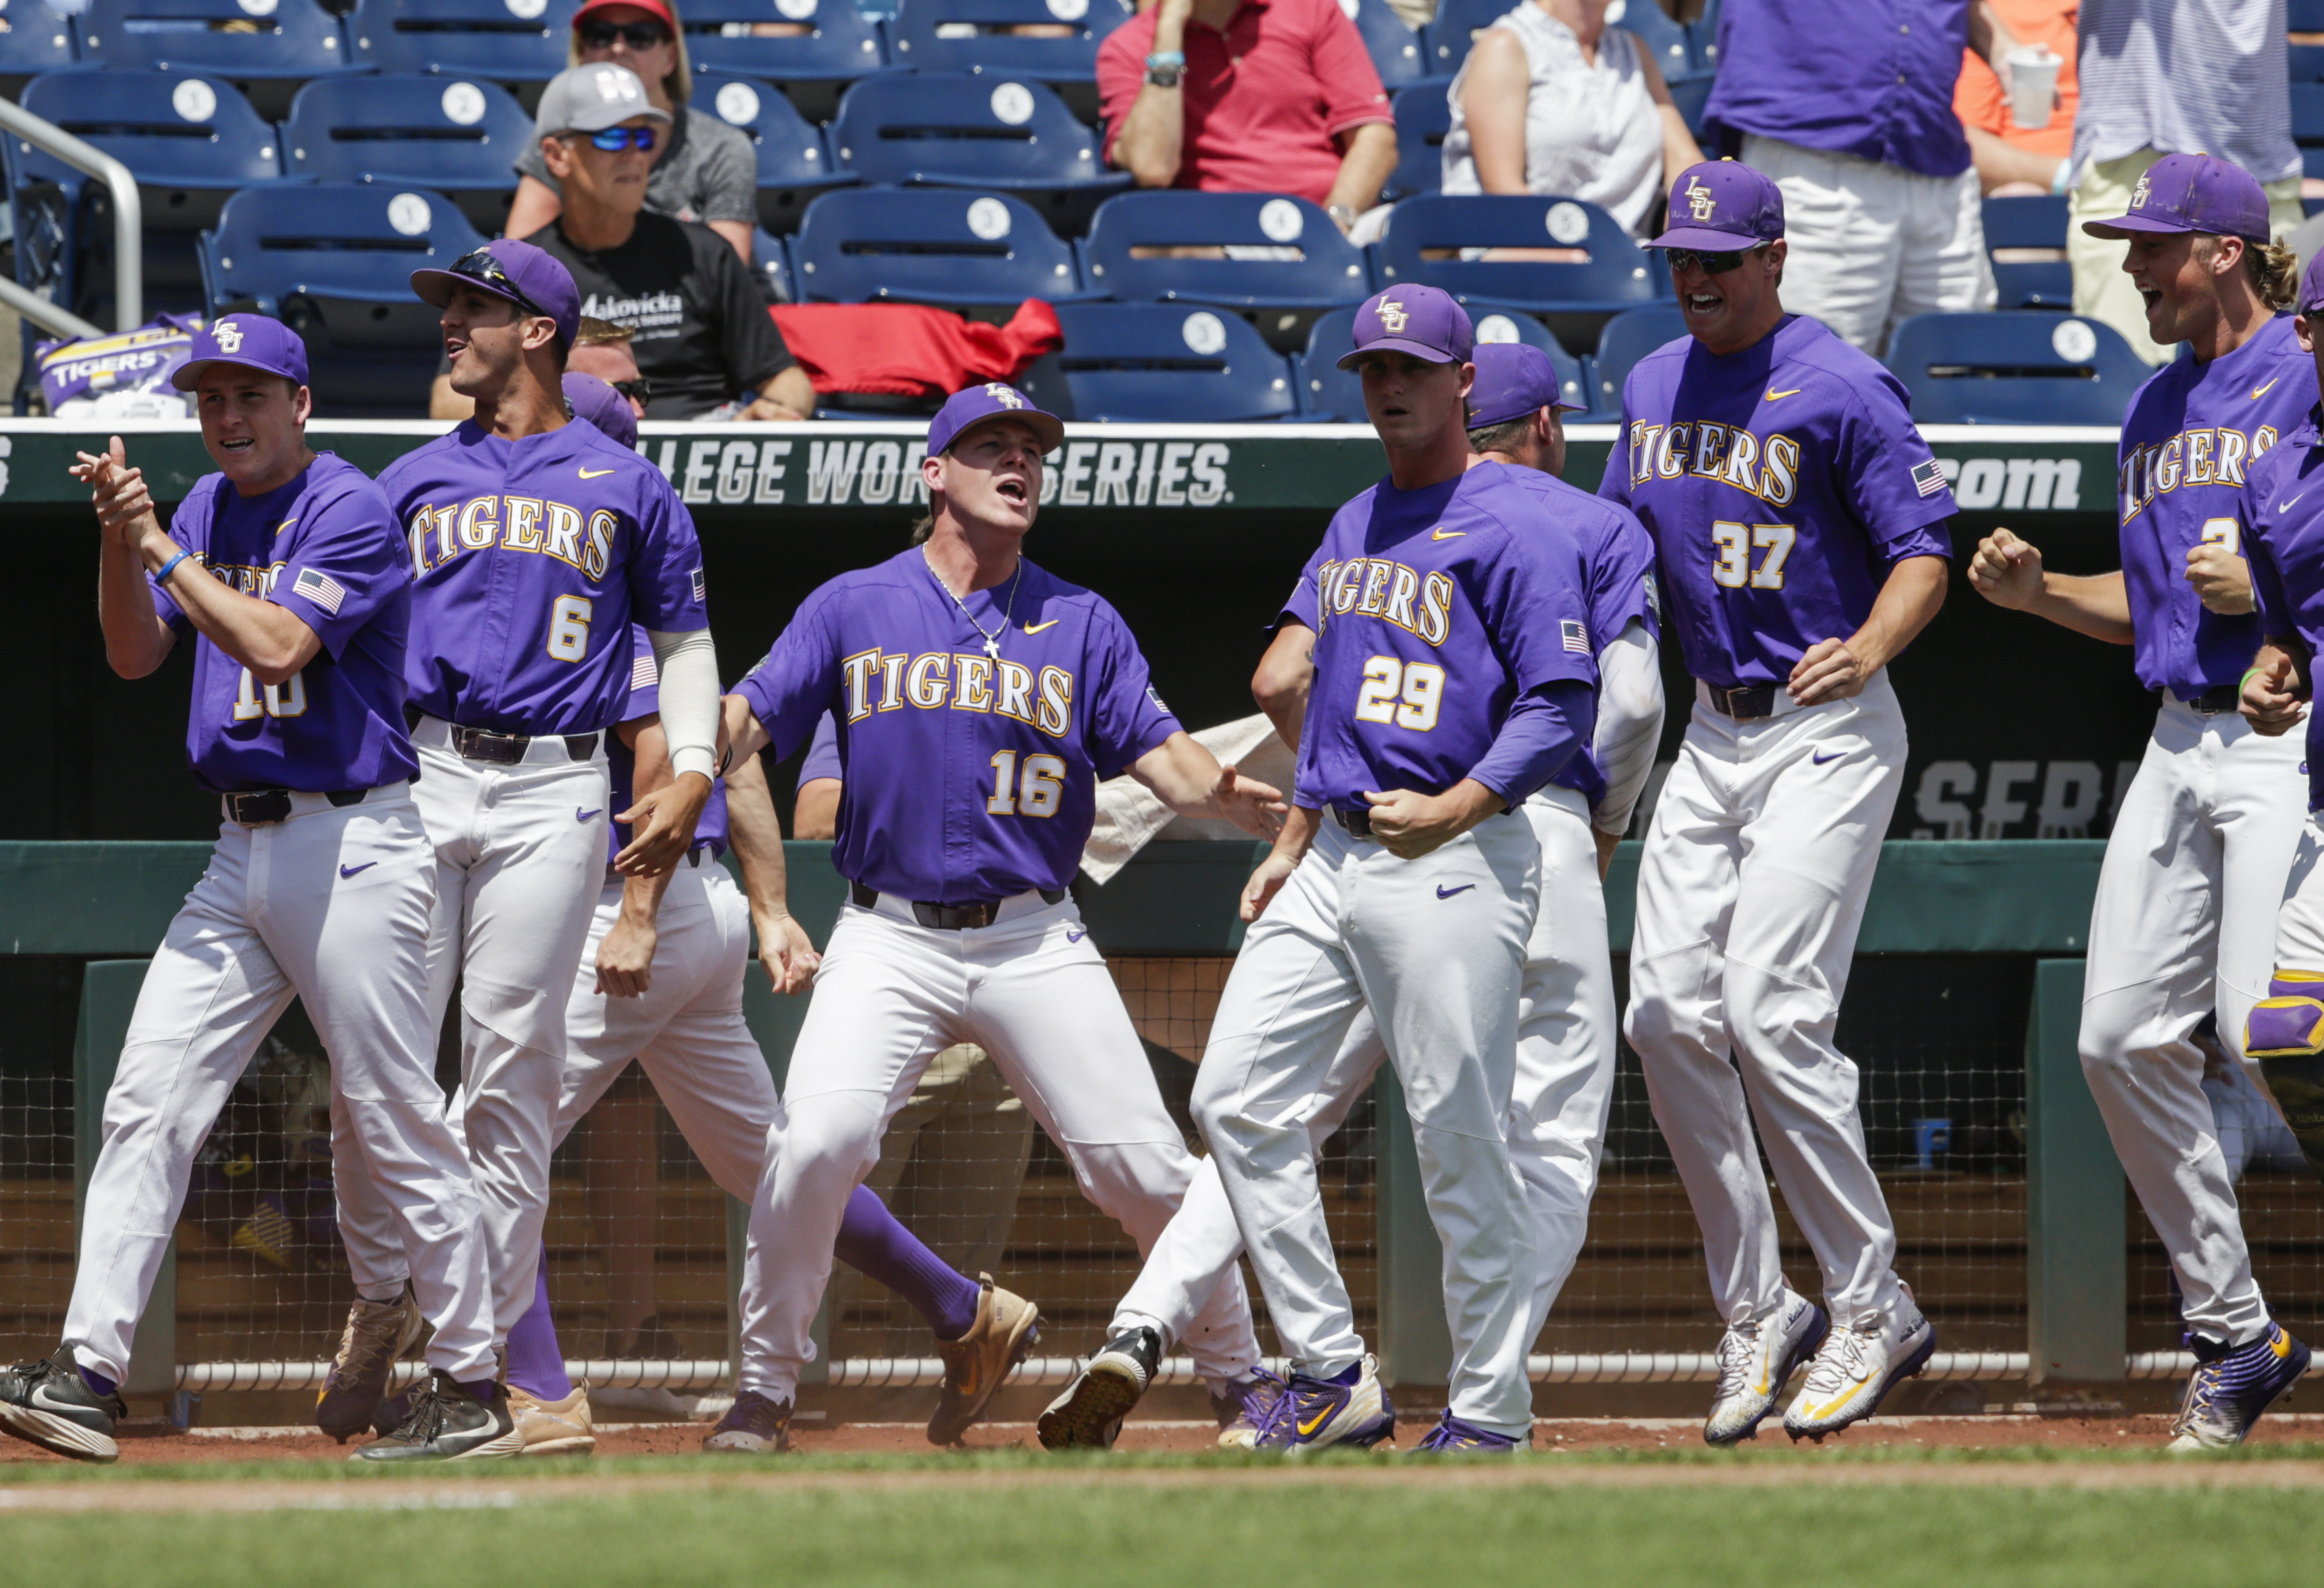 LSU players, including Jared Poche (16), celebrate after Michael Papierski scored a three-run home run against Oregon State in the third inning of an NCAA College World Series baseball elimination game in Omaha, Neb., Saturday, June 24, 2017. (AP Photo/Nati Harnik)